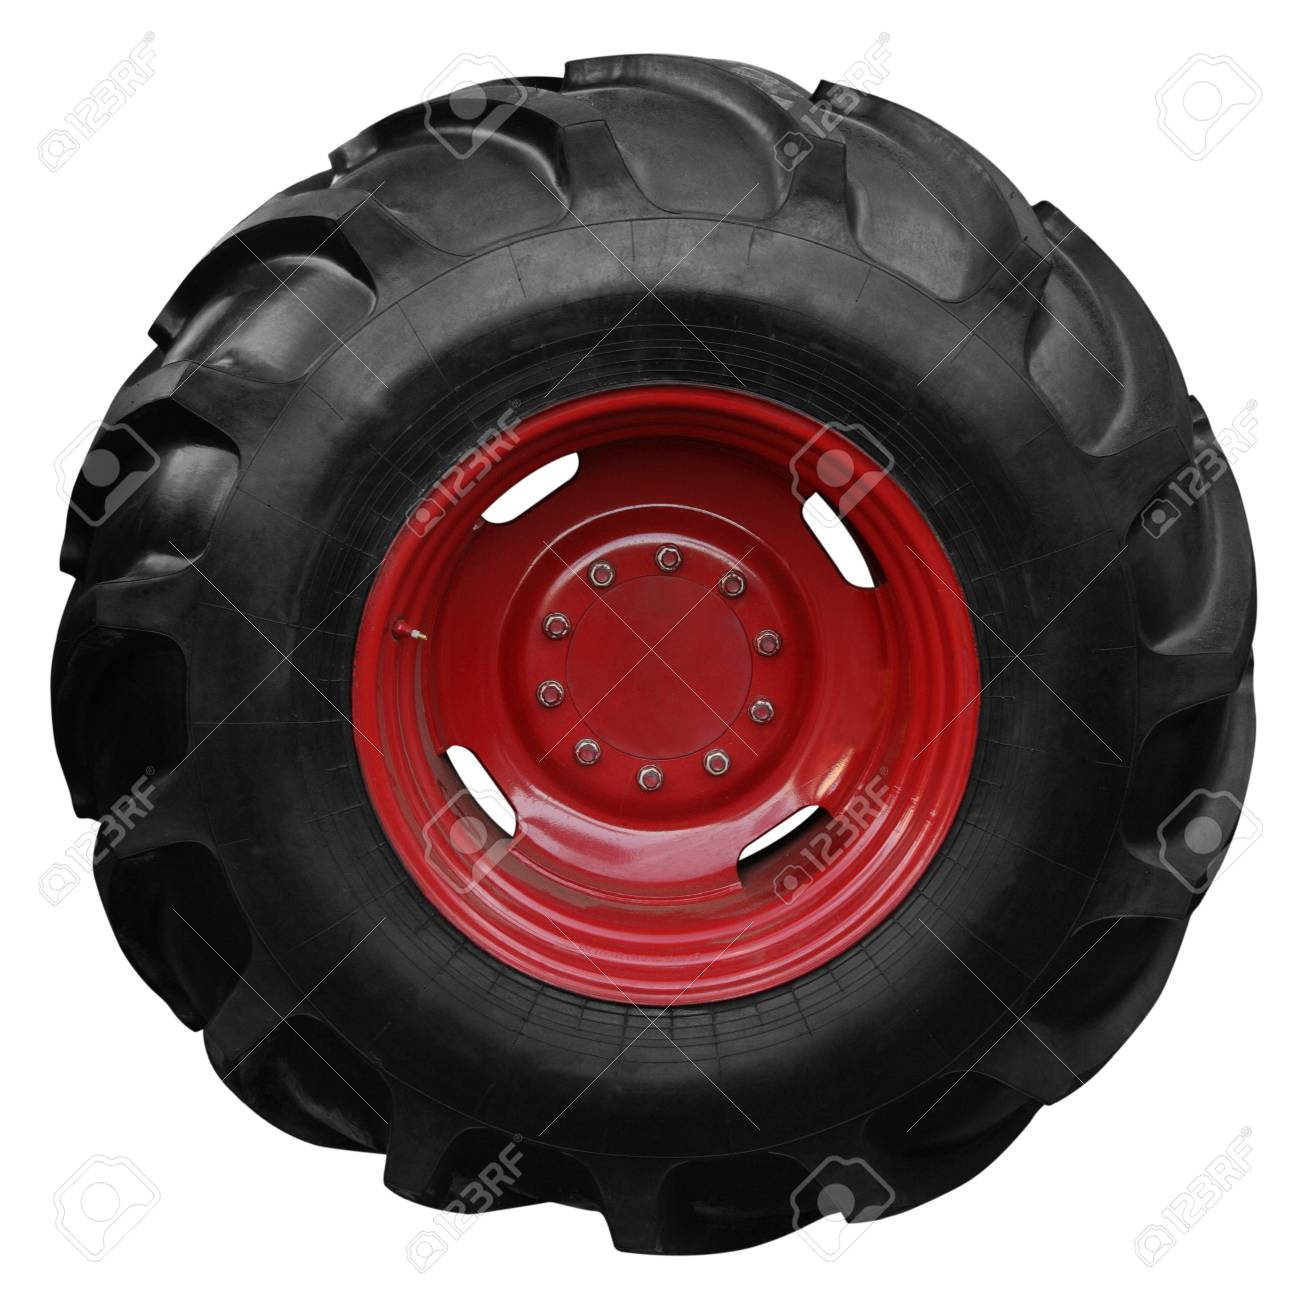 Tractor tire on white background Stock Photo - 12234896